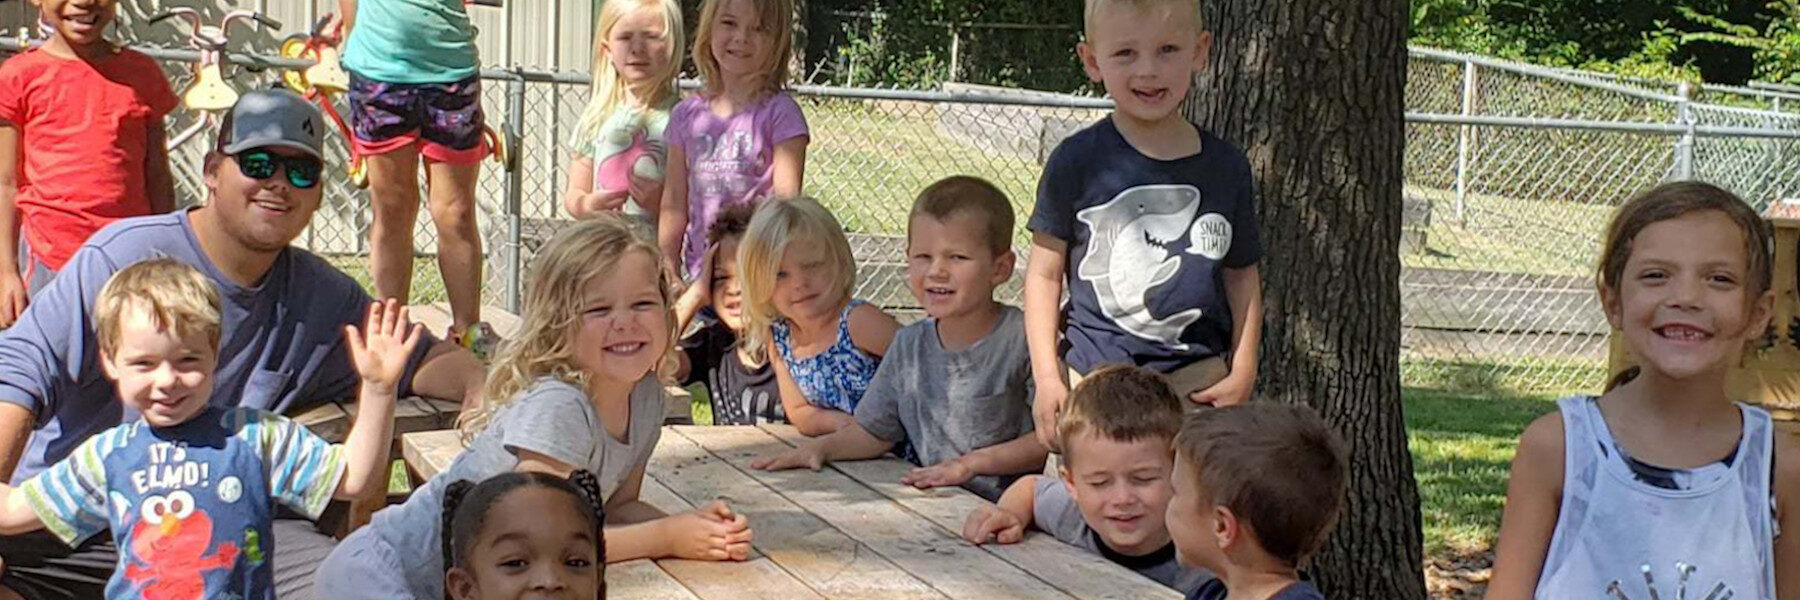 A Focus on Education – Johnston Early Learning Center